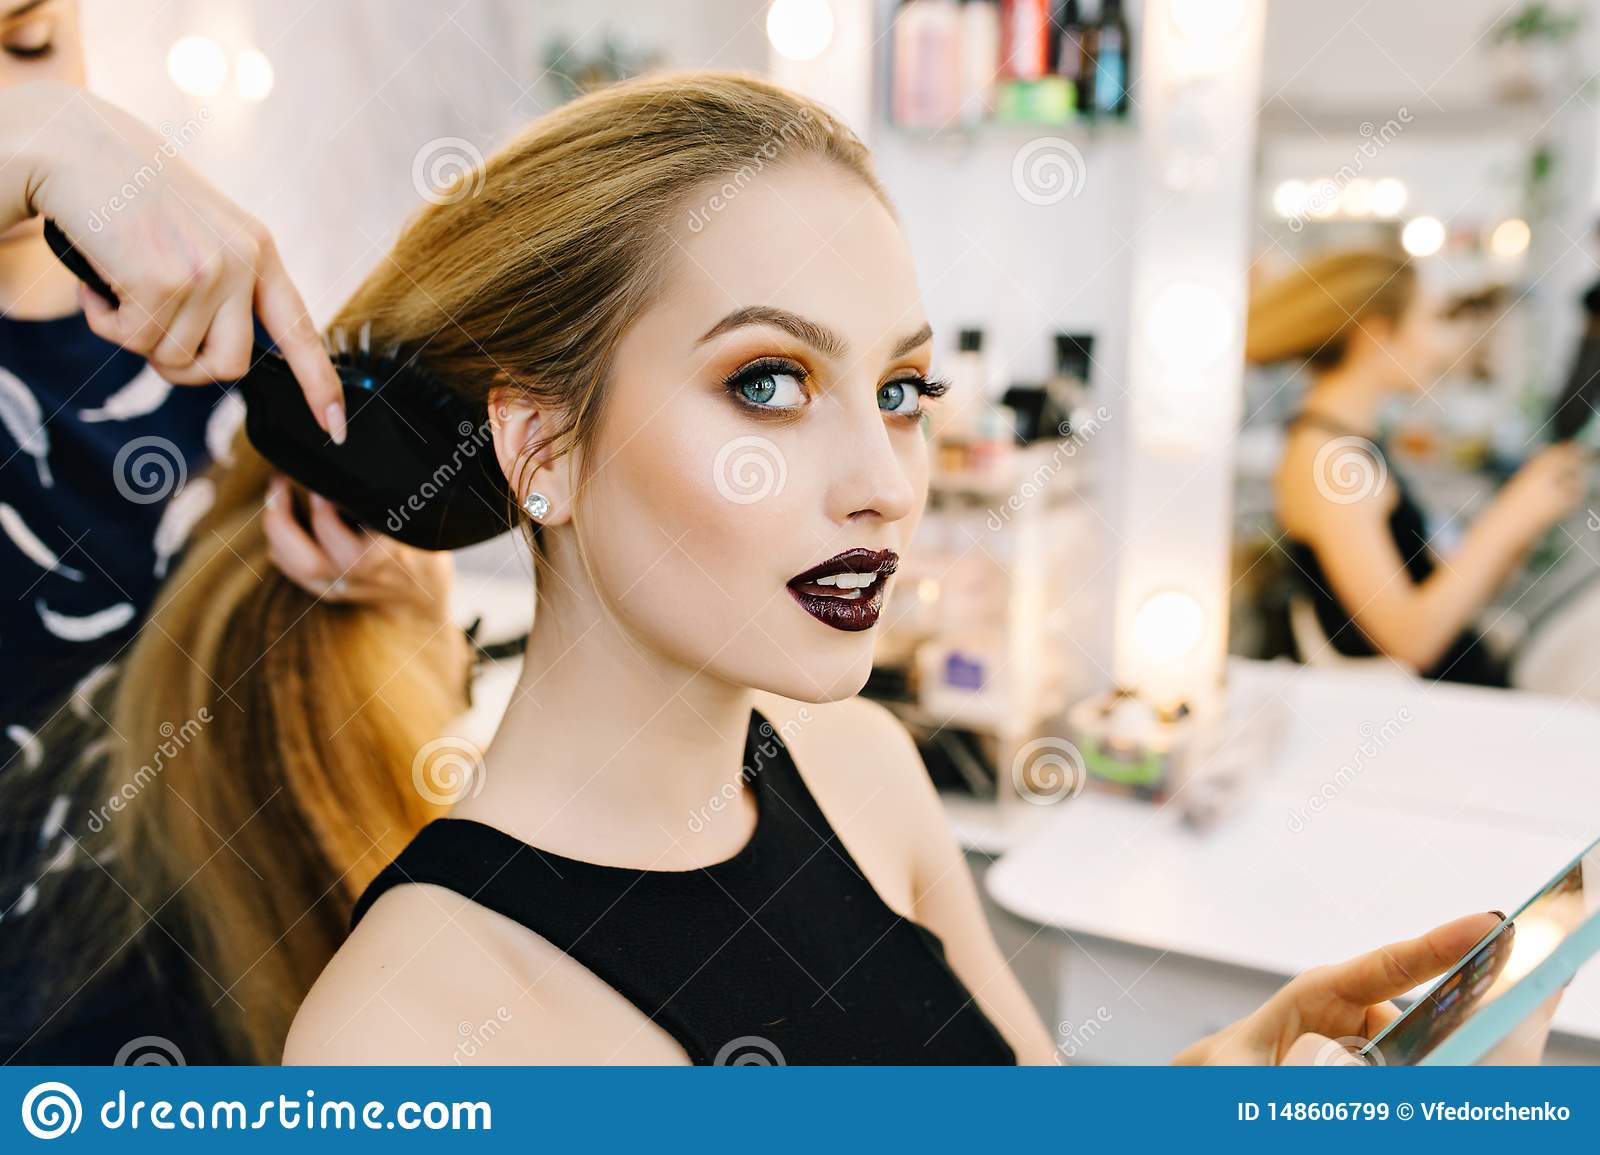 Stylish Portrait Of Attractive Young Woman In Beauty Salon Preparing To Party Making Hairstyle Makeup Stylist Stock Image Image Of Hairdressing Hairdress 148606799